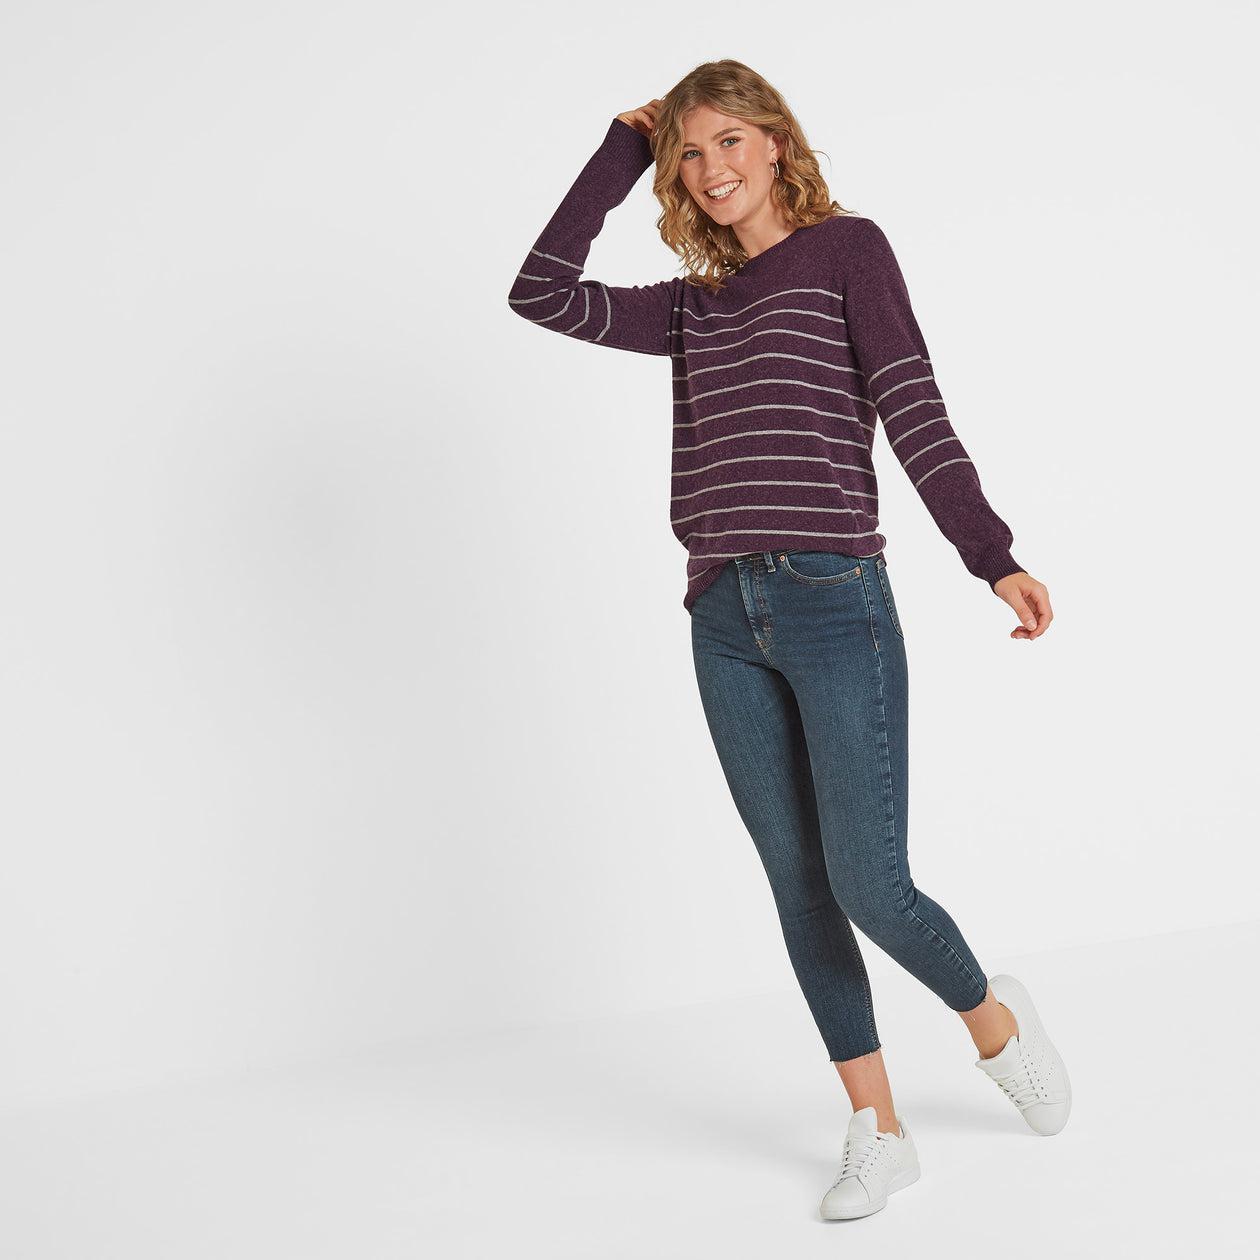 Patsy Womens Striped Jumper - Aubergine/Light Grey Marl image 4